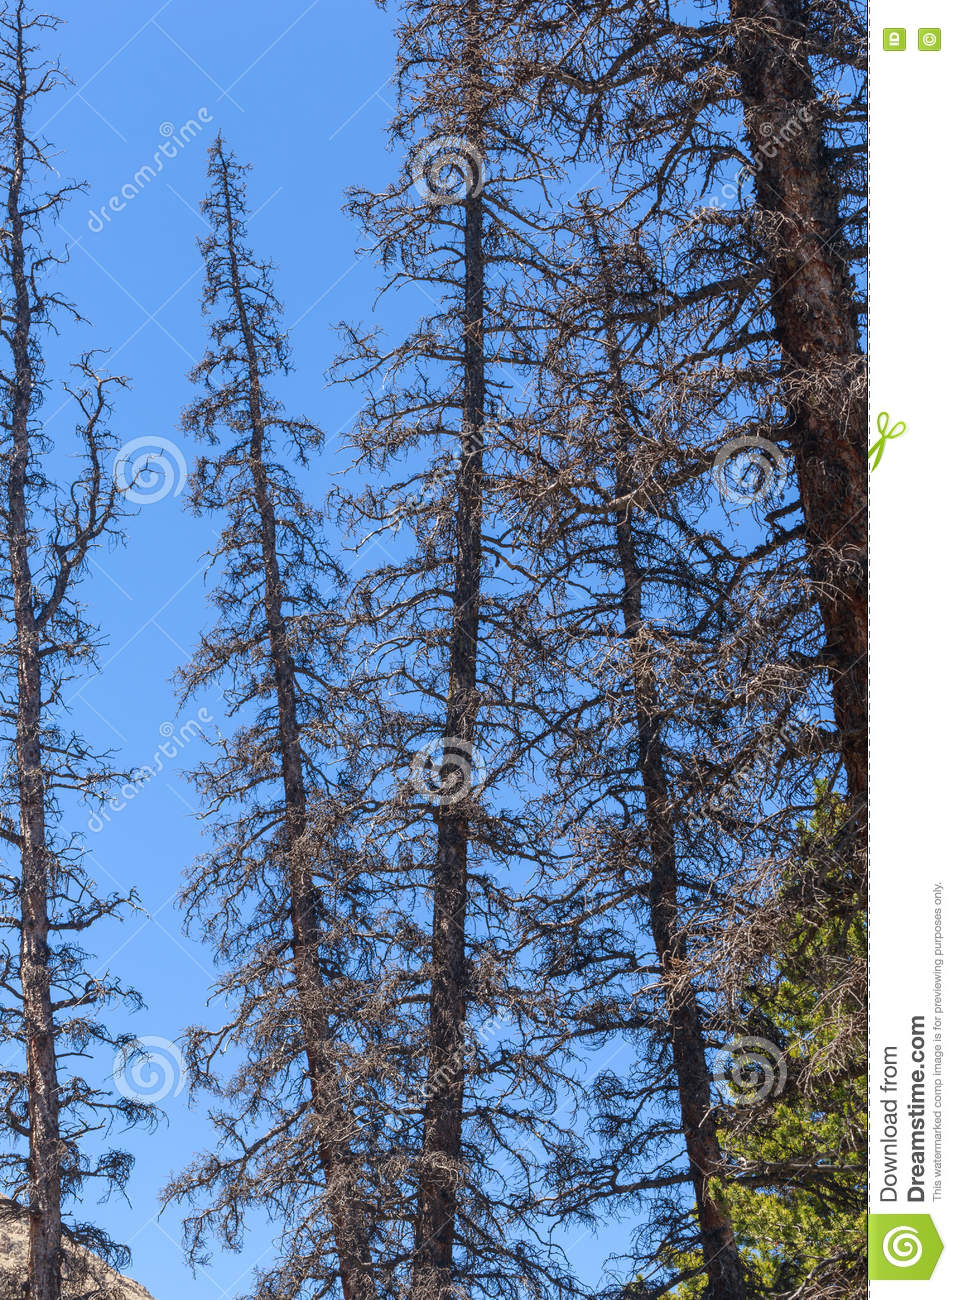 Dead Conifer Trees Killed by Bark Beetle